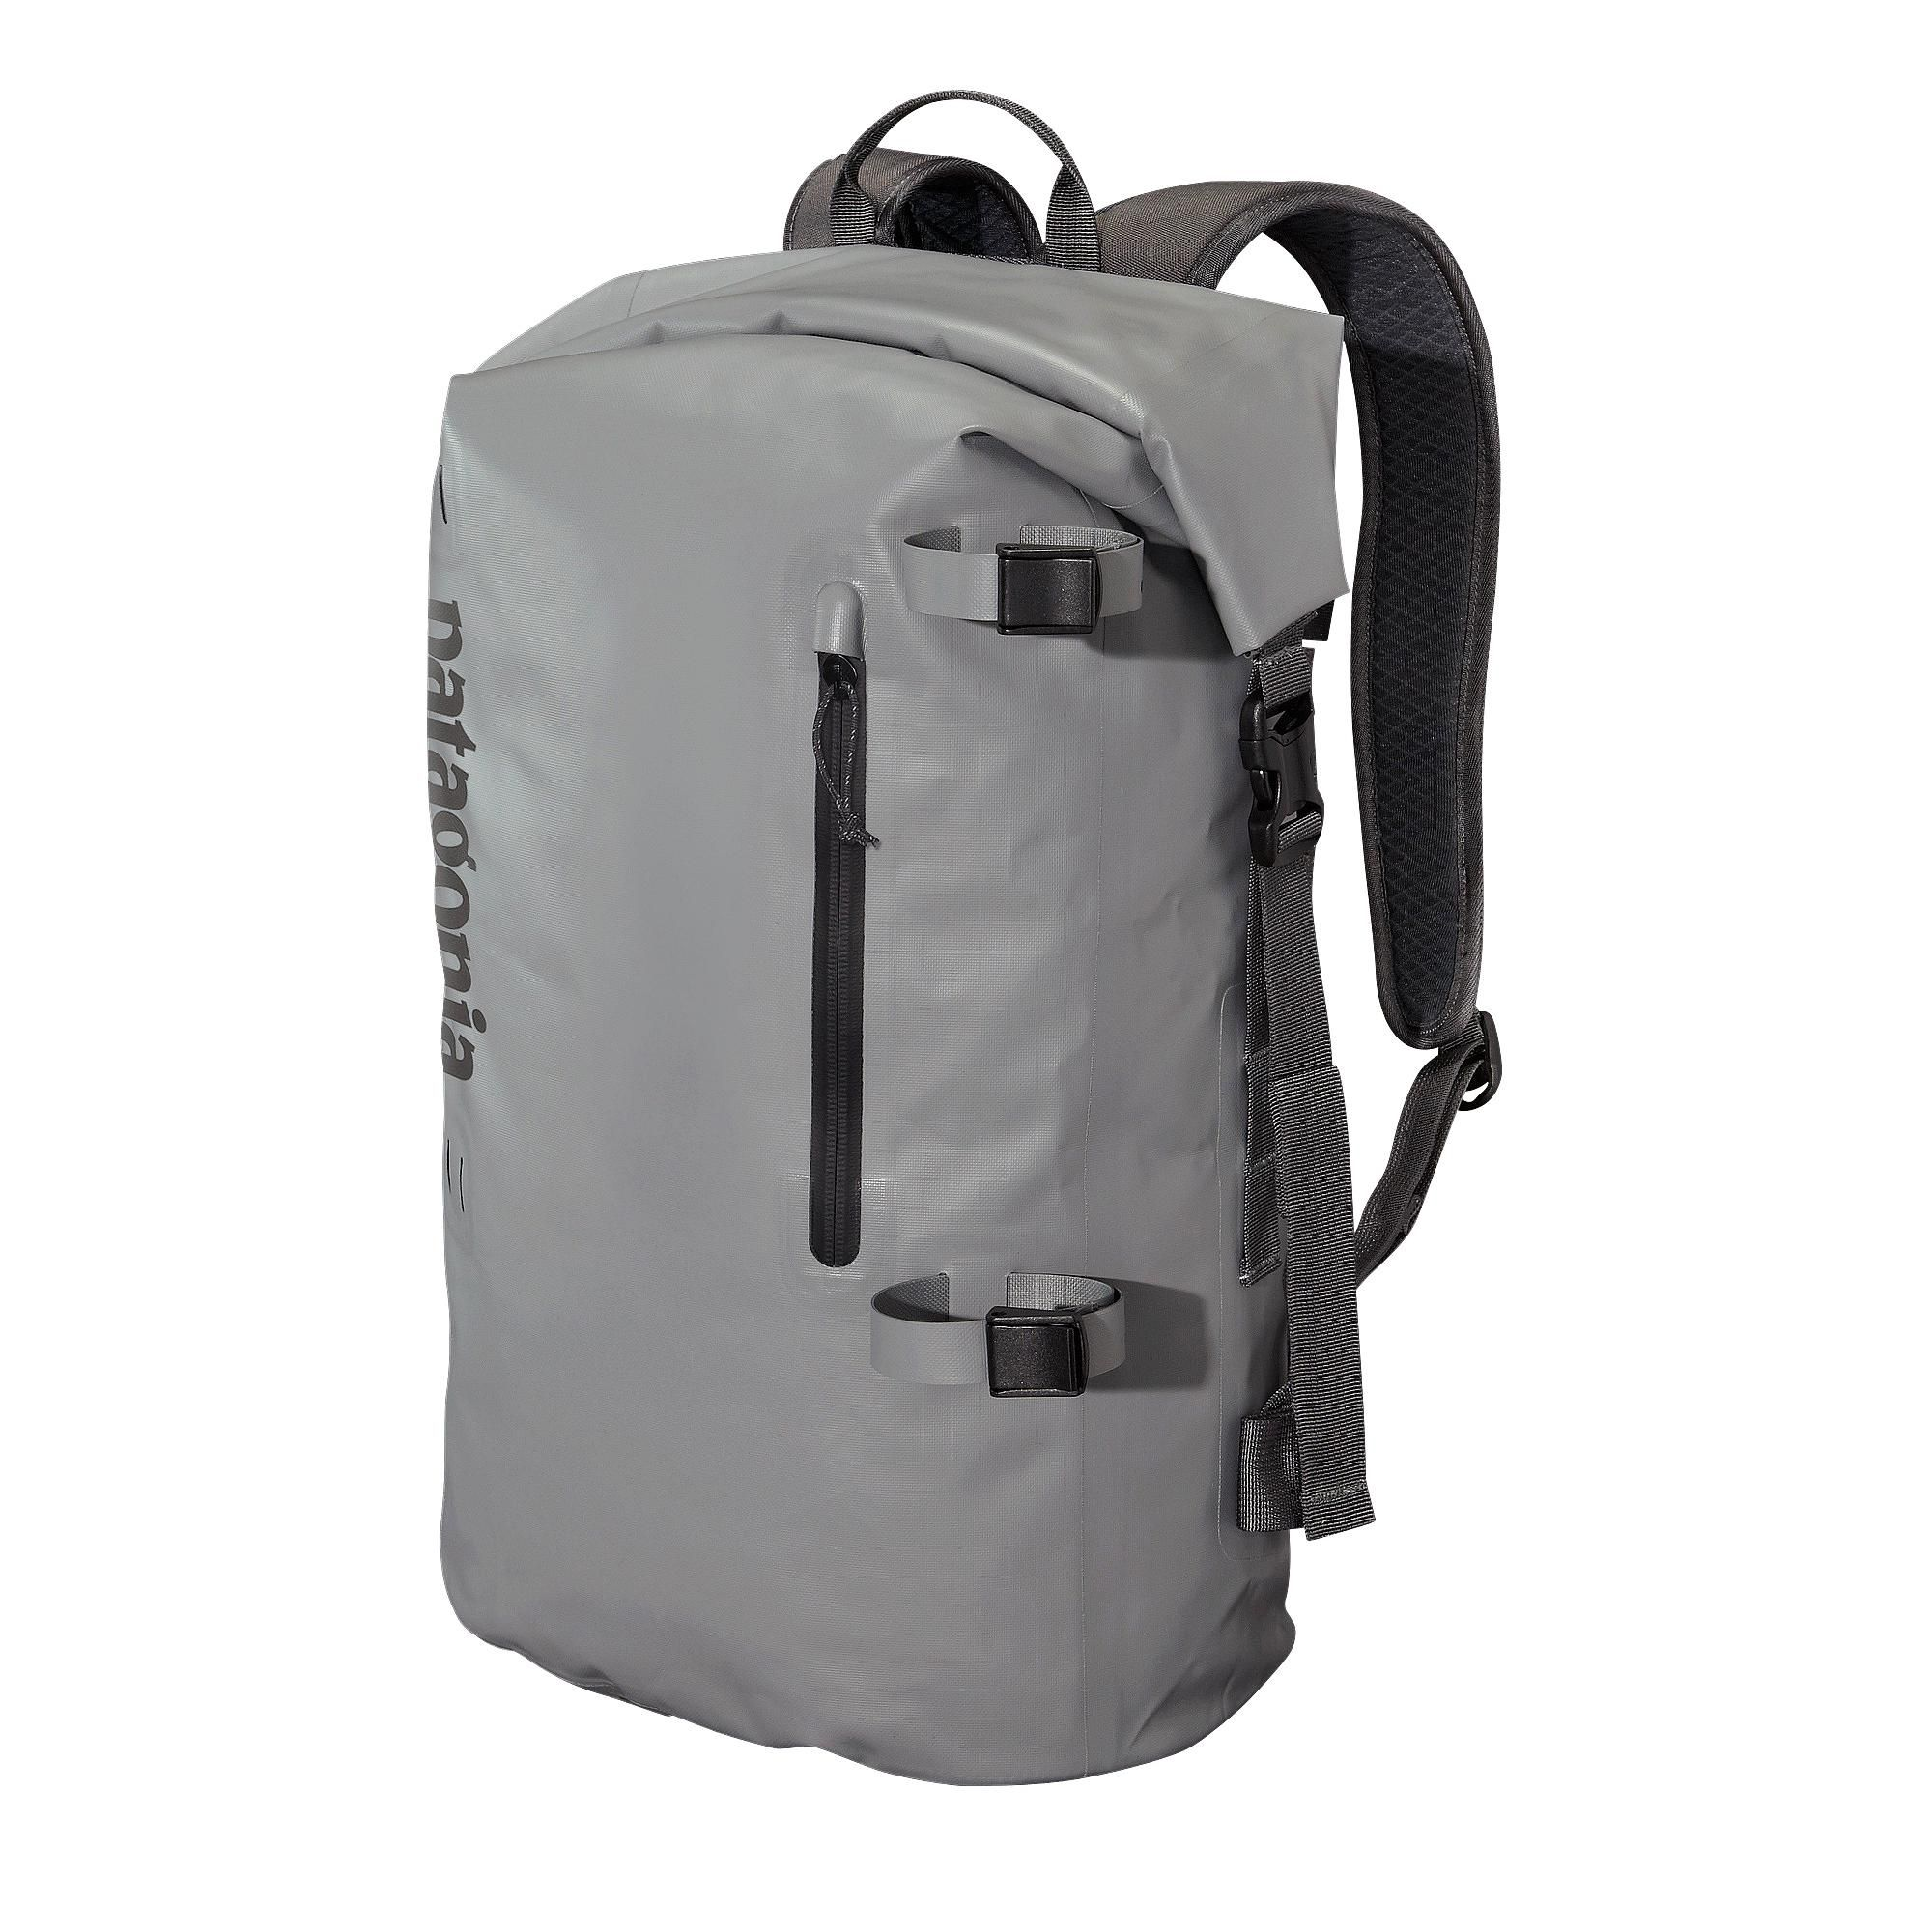 Stormfront® Roll Top Pack 45L | Patagonia, Weather and Fashion bags